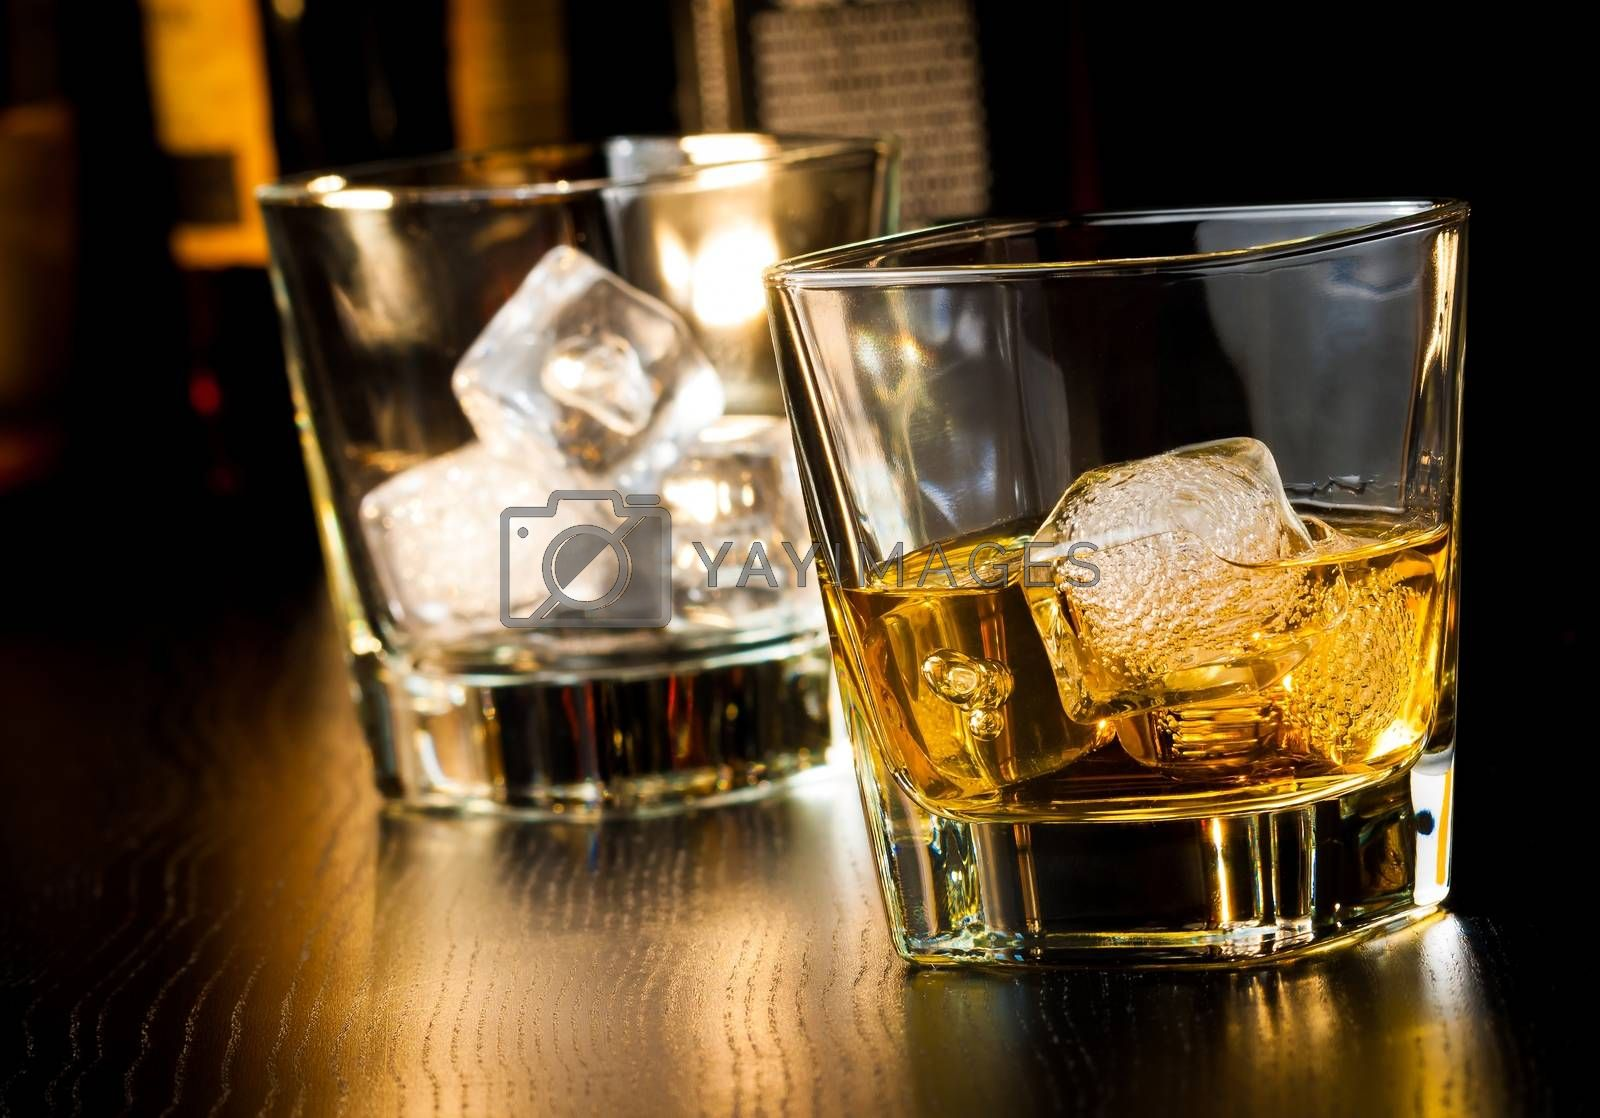 whiskey glass with ice in front of empty whiskey glass  by donfiore